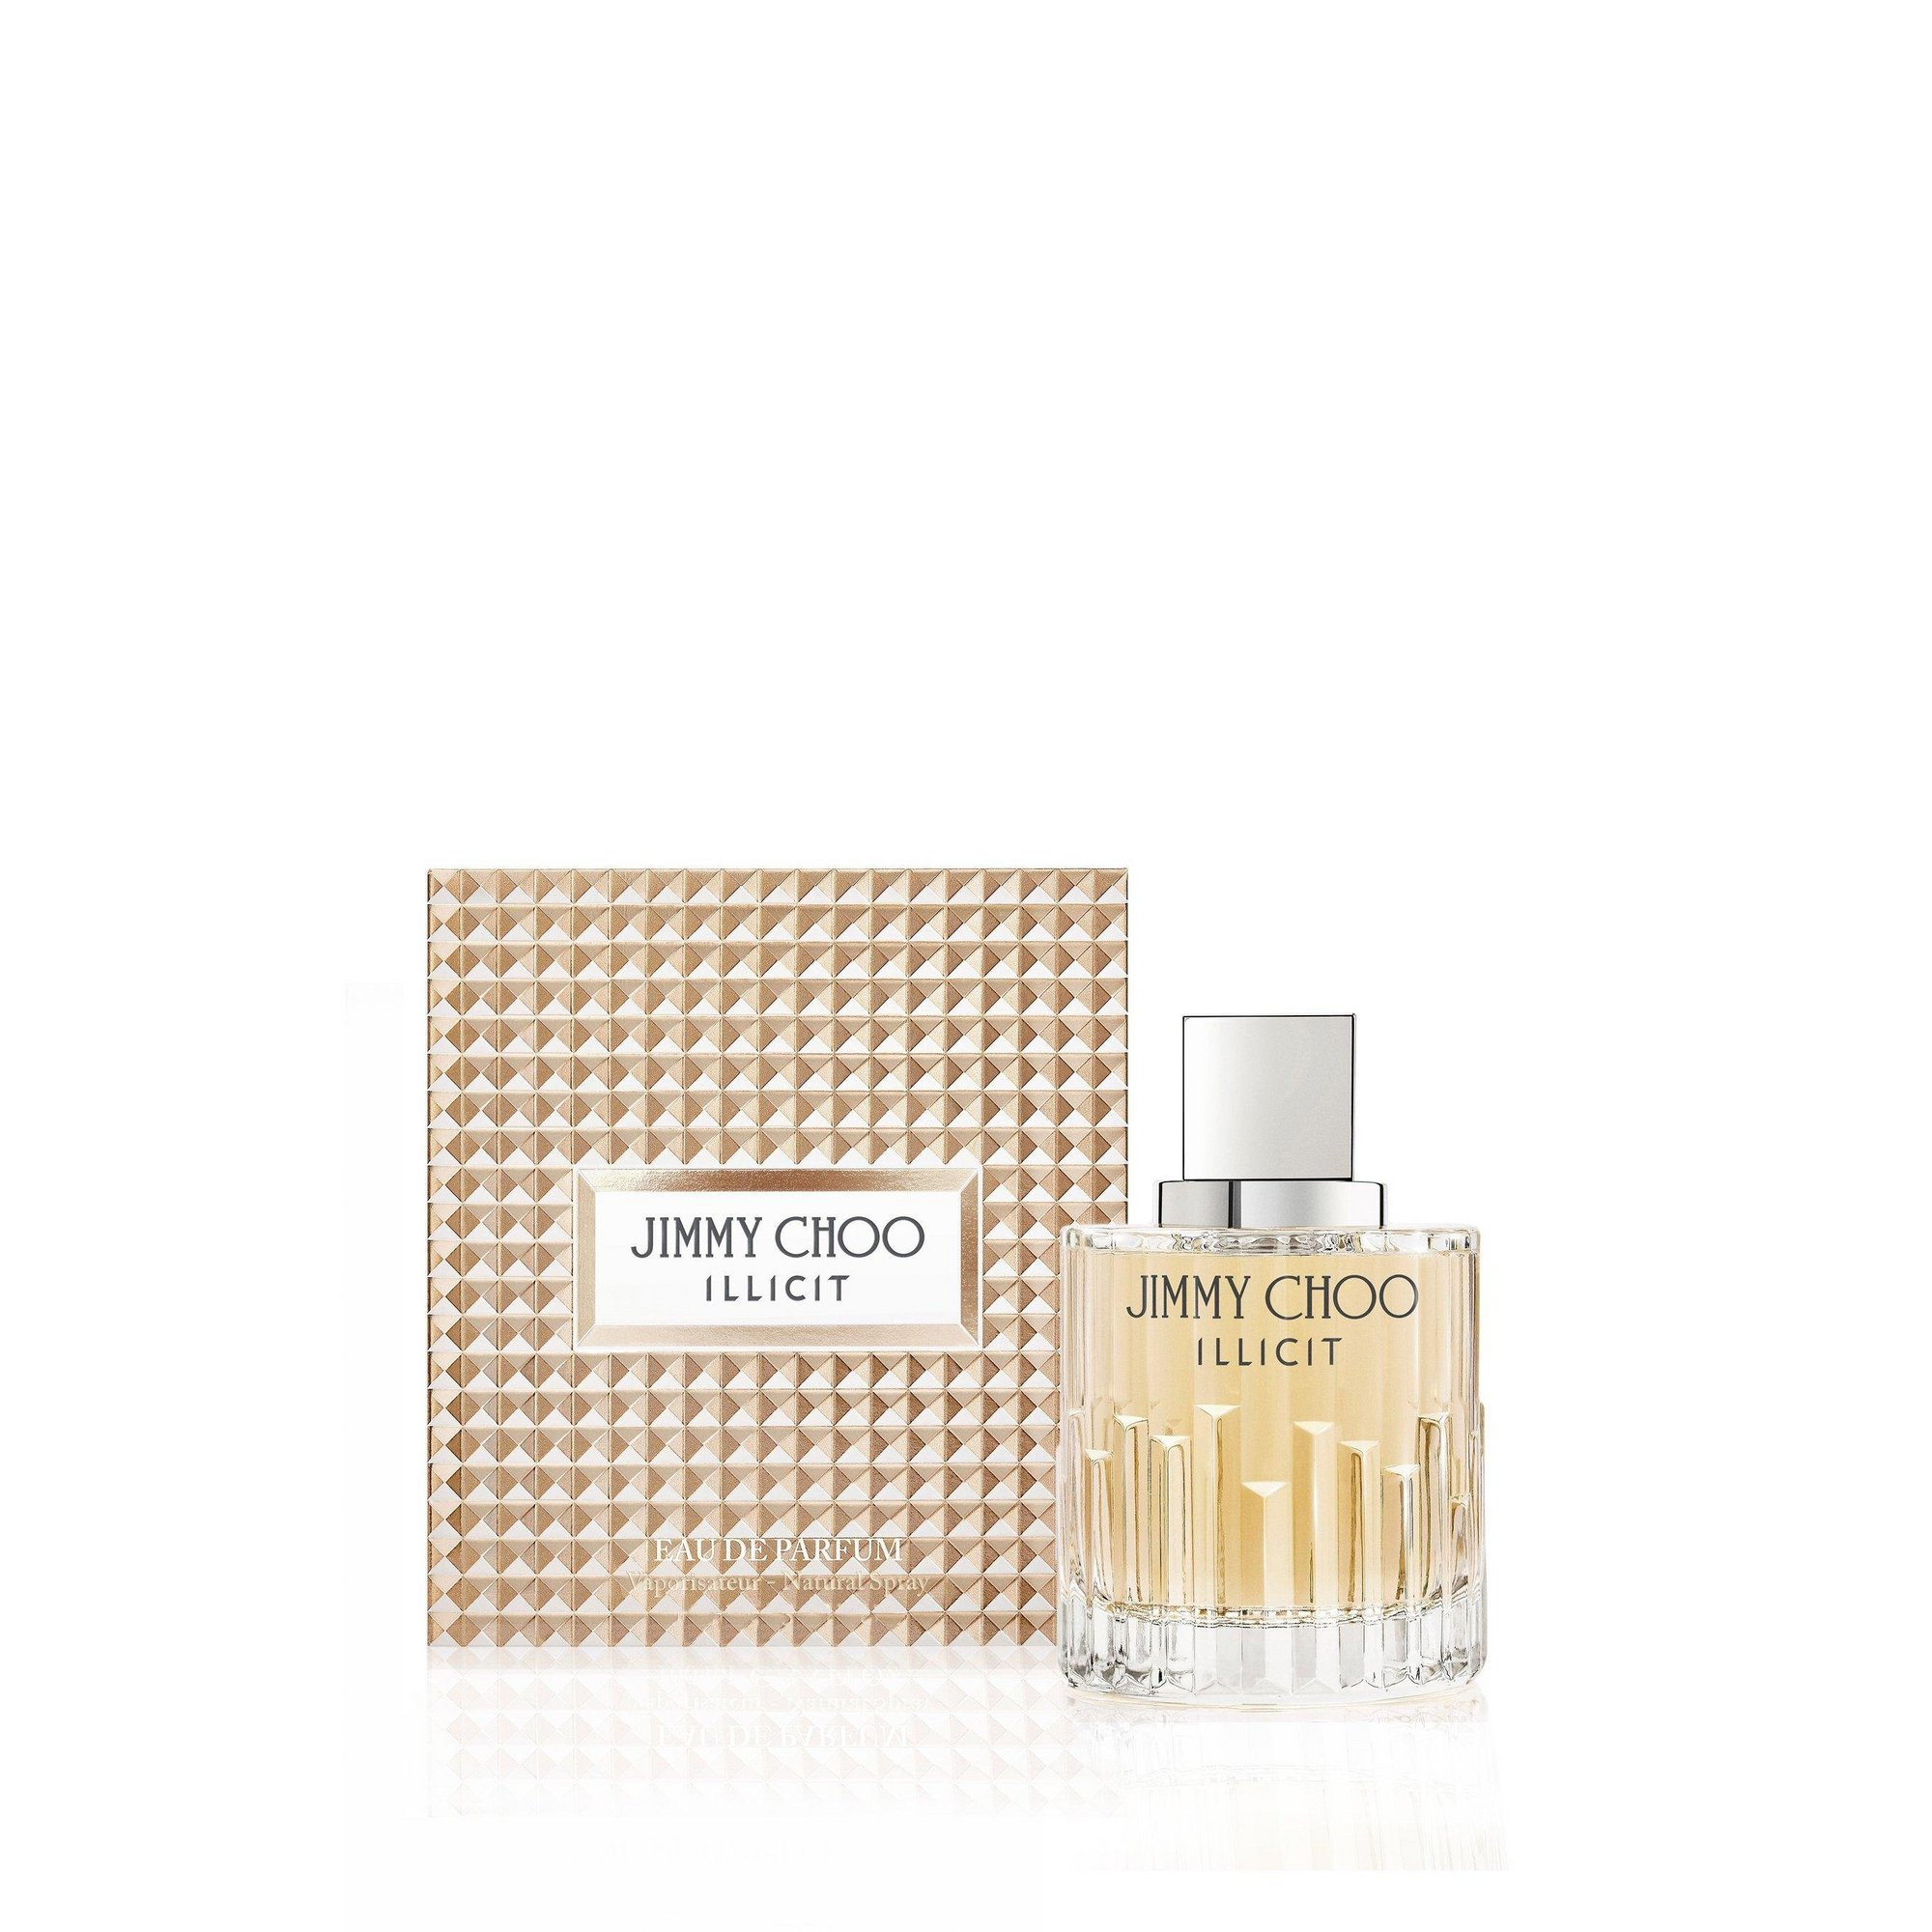 Image of Jimmy Choo Illicit EDP